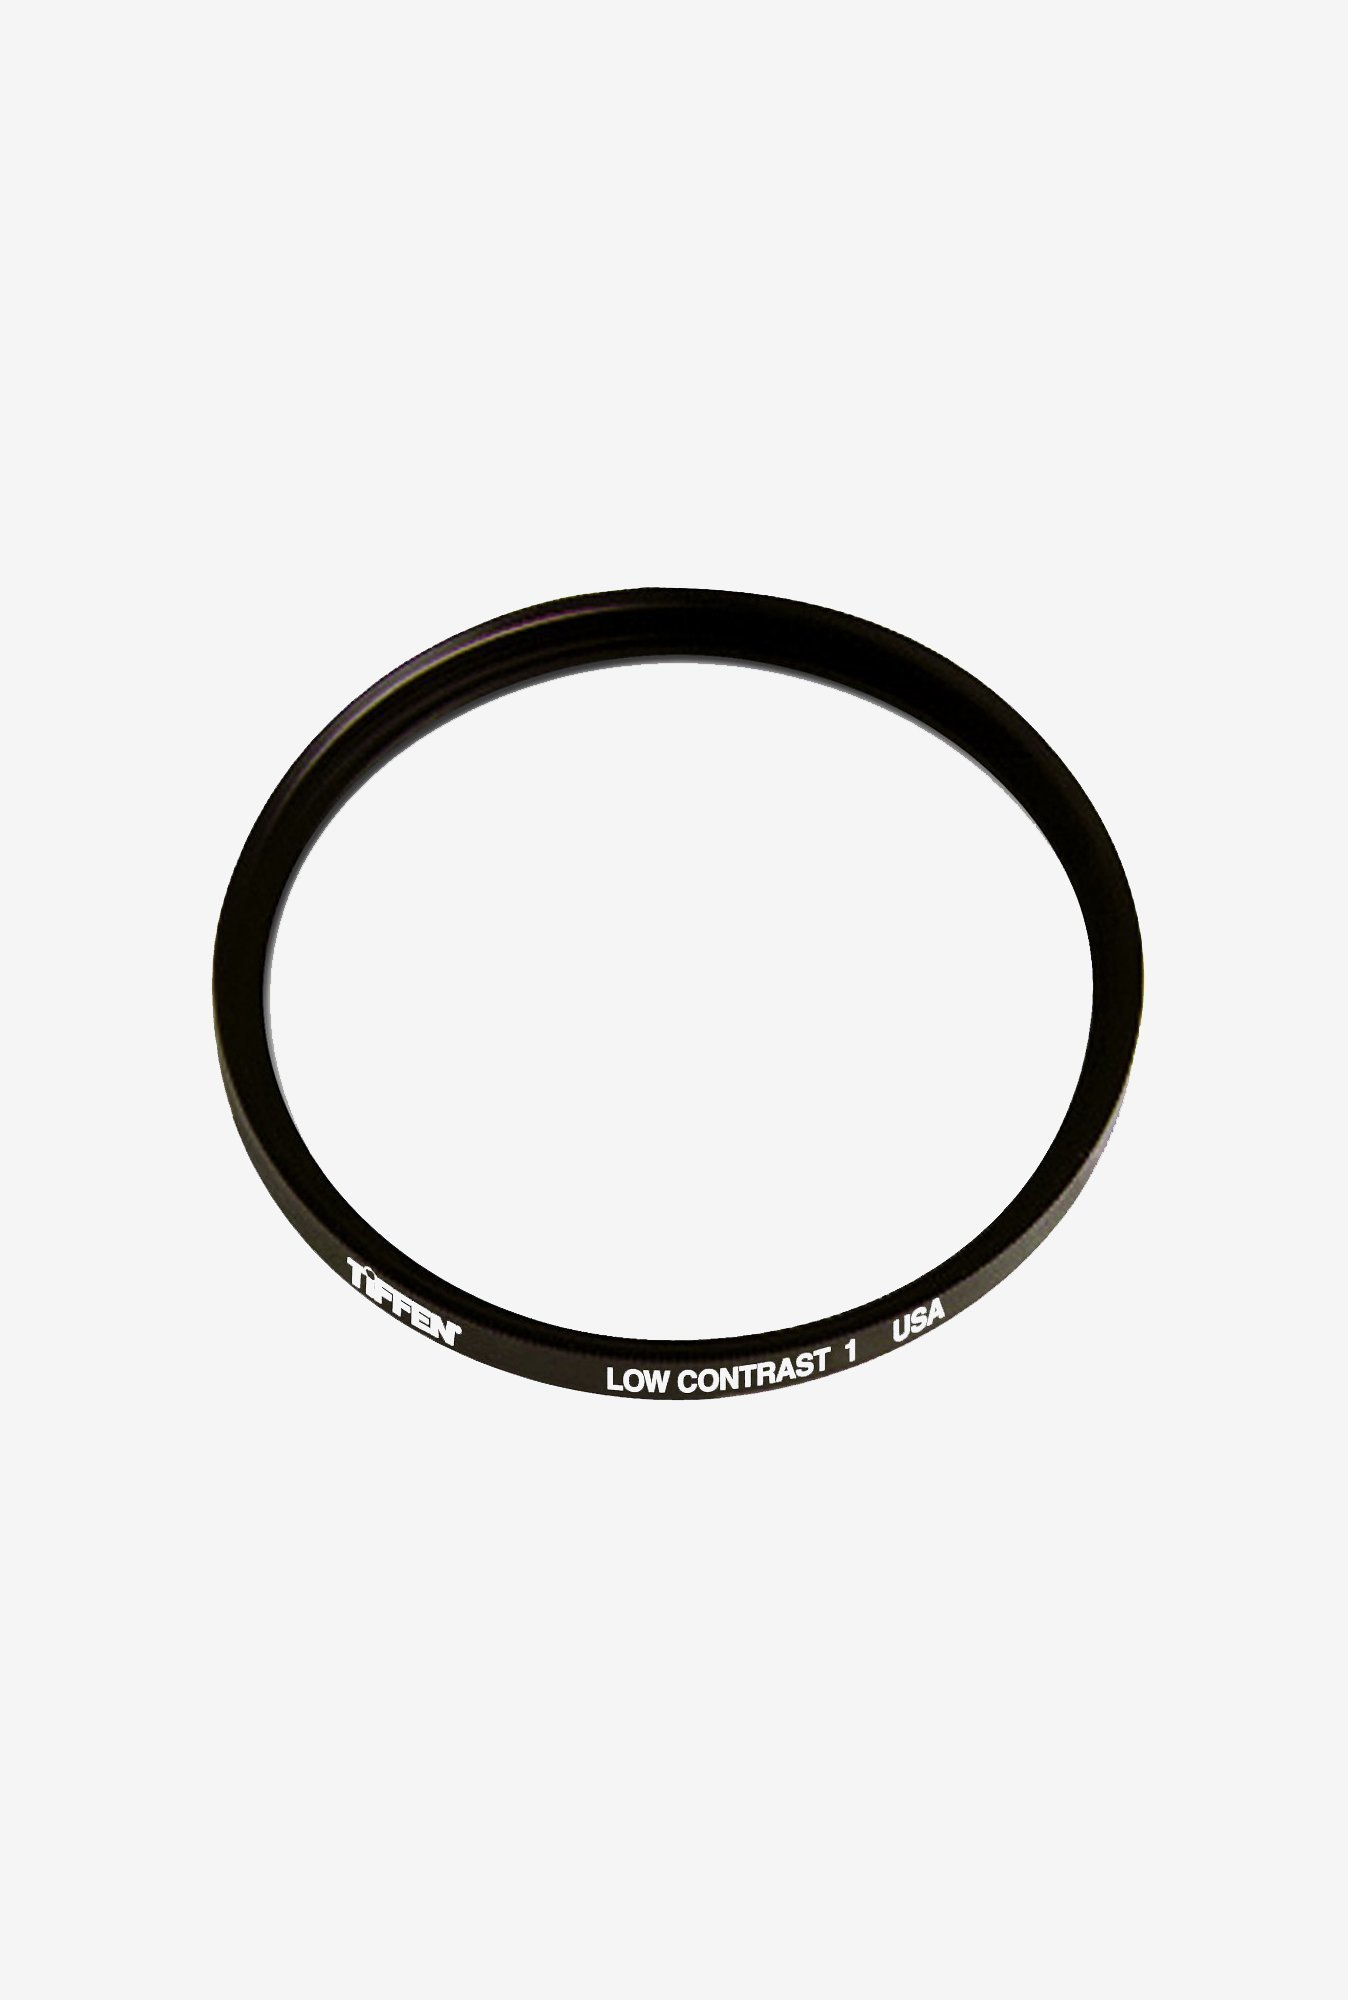 Tiffen 49LC1 49mm Low Contrast 1 Filter (Black)